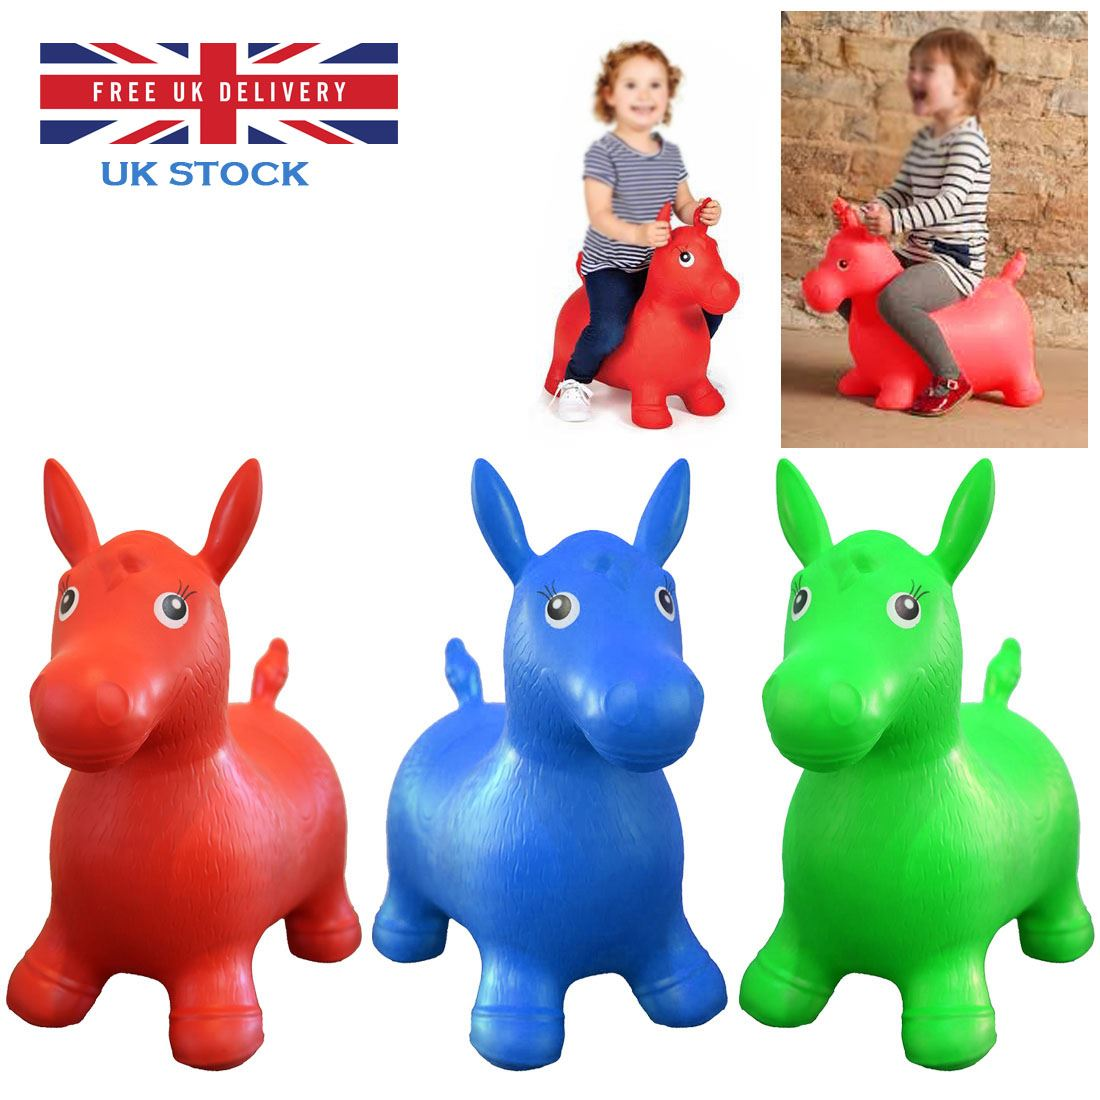 enfants animal ballon sauteur gonflable cheval ride on rebondissant jeu jouets ebay. Black Bedroom Furniture Sets. Home Design Ideas